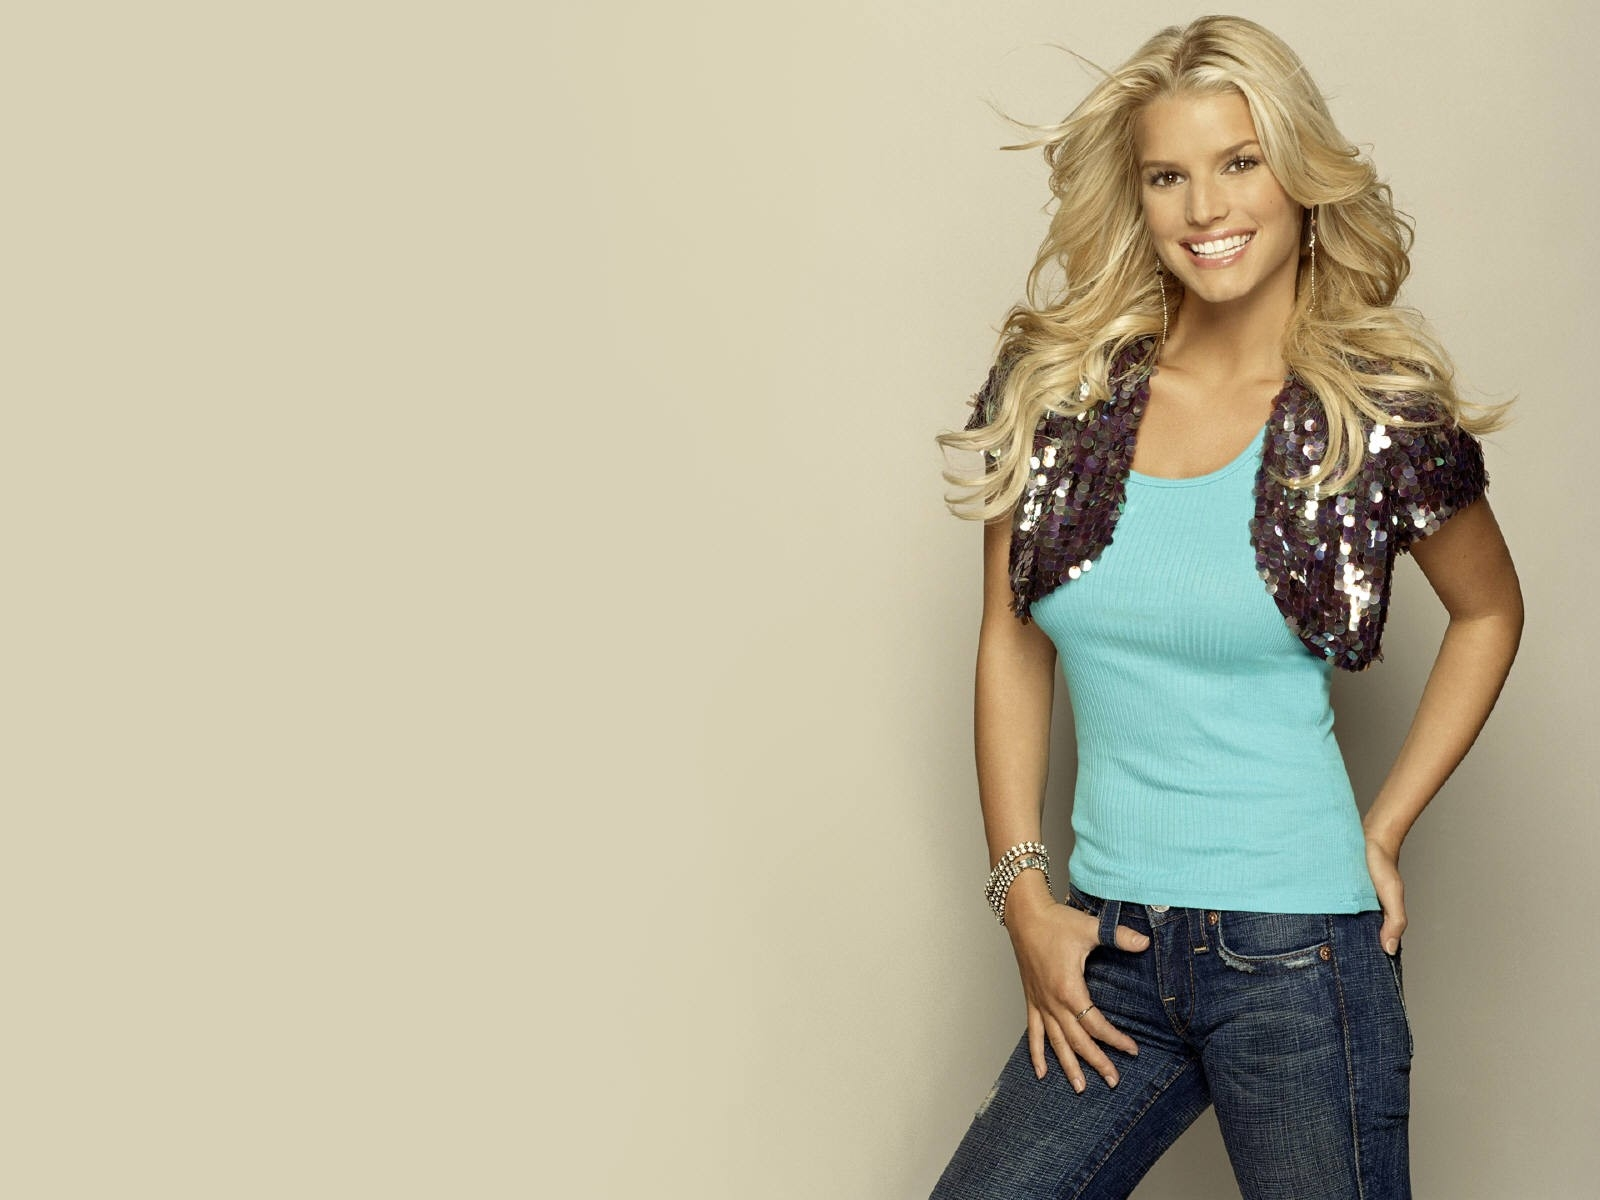 Wallpaper di una sorridente Jessica Simpson